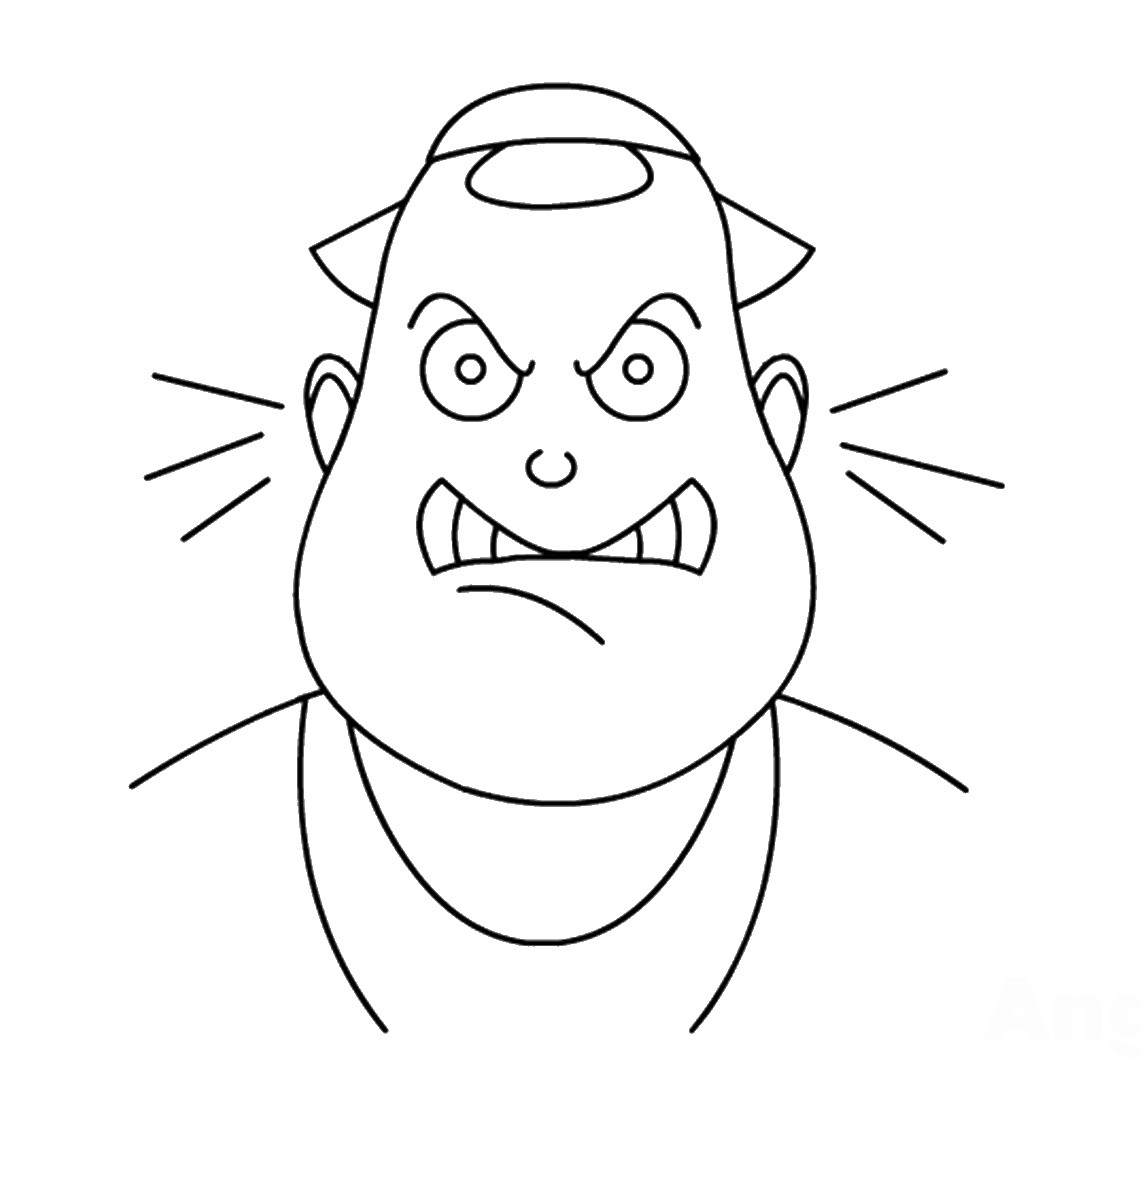 emotions coloring pages feelings emotions coloring pages sketch coloring page emotions pages coloring